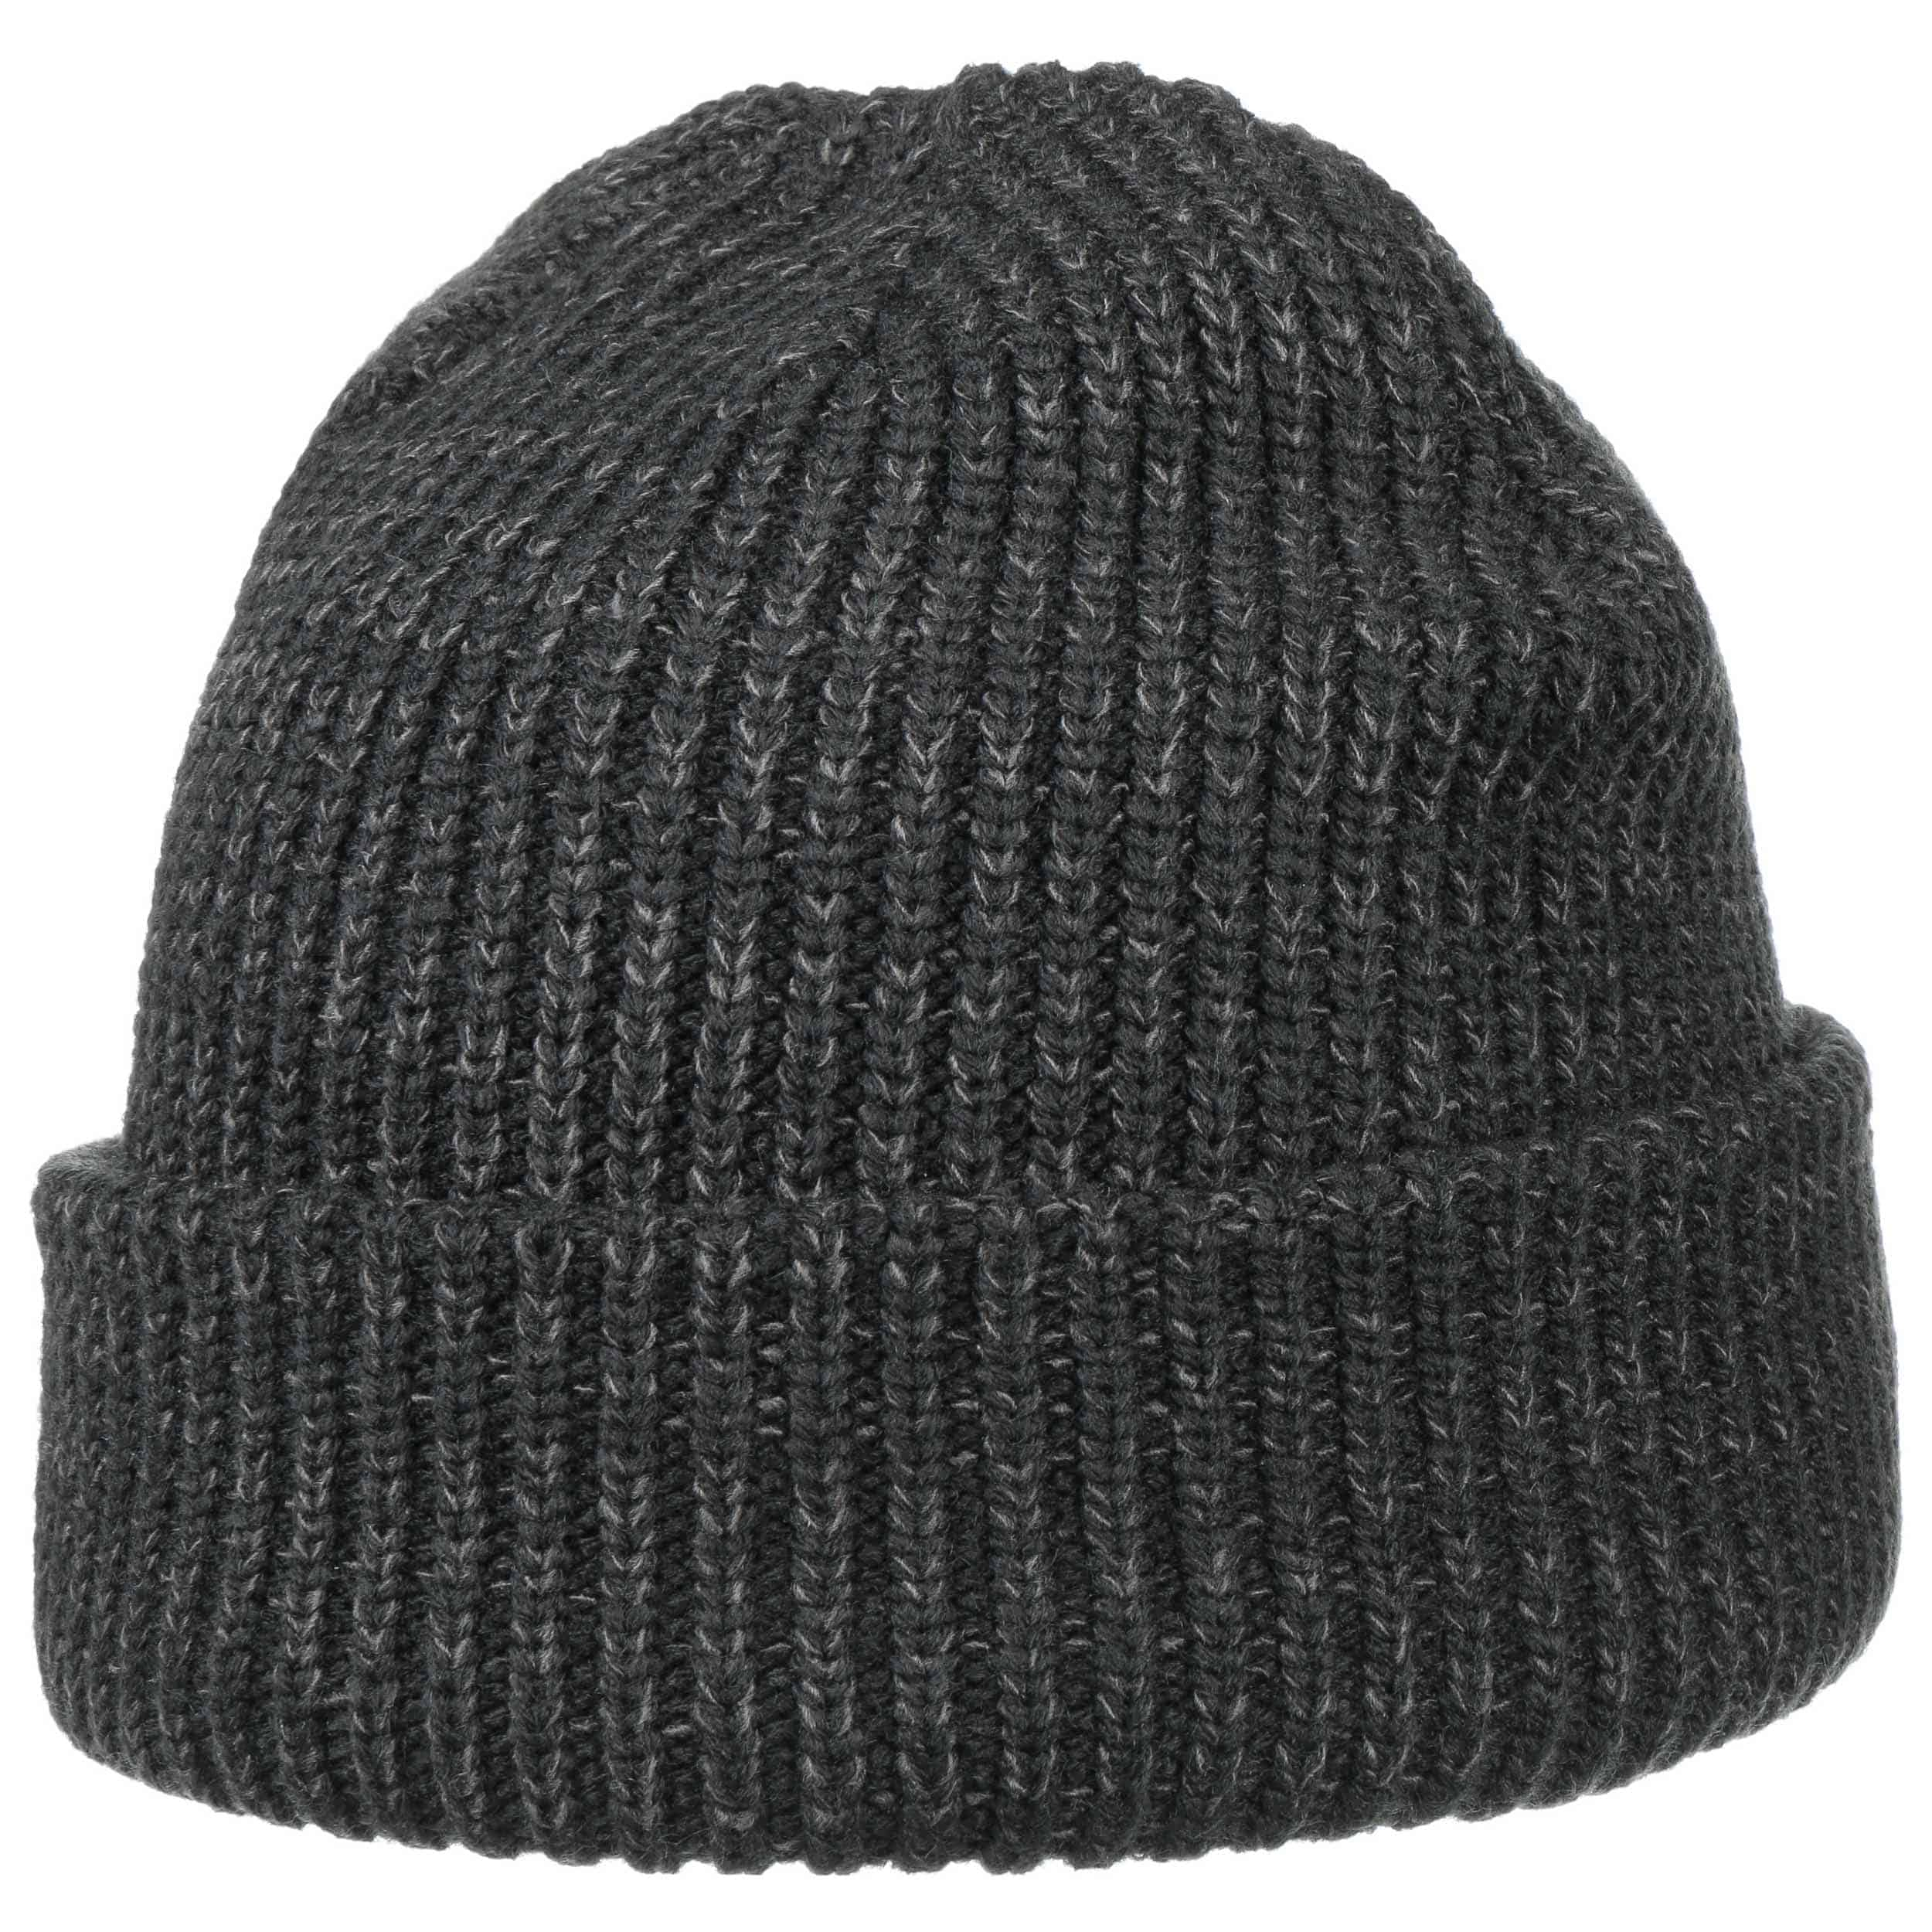 6a20656b141 ... Salty Dog Beanie Hat by The North Face - black 2 ...